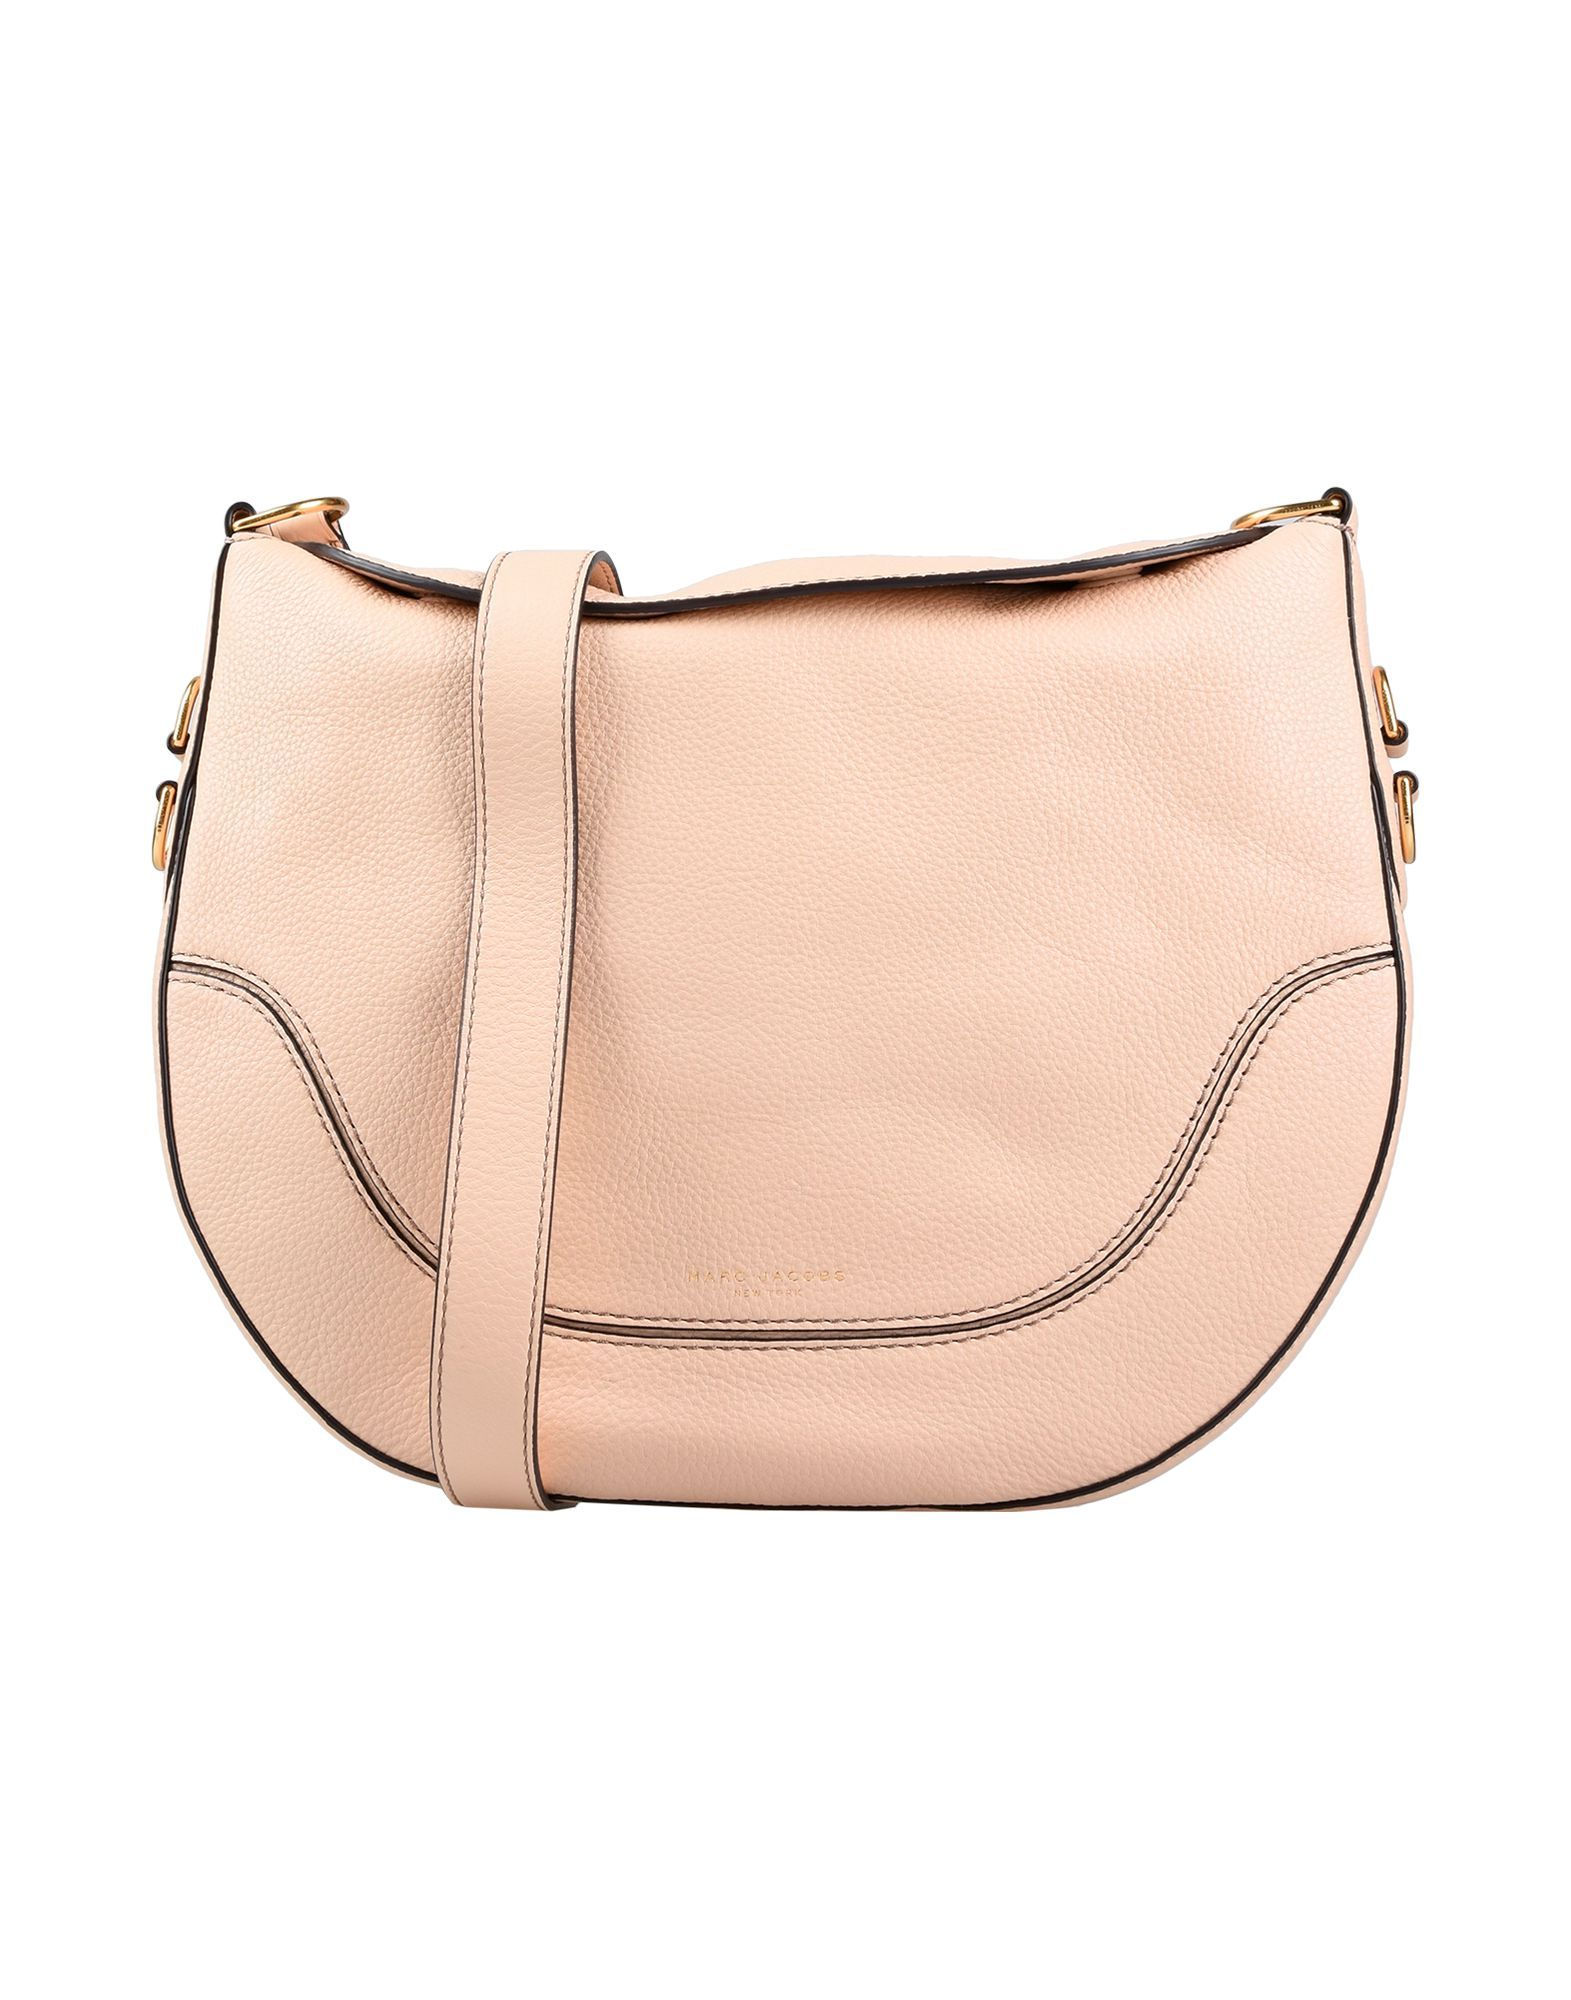 Marc Jacobs Pale Pink Leather Cross Body Bag